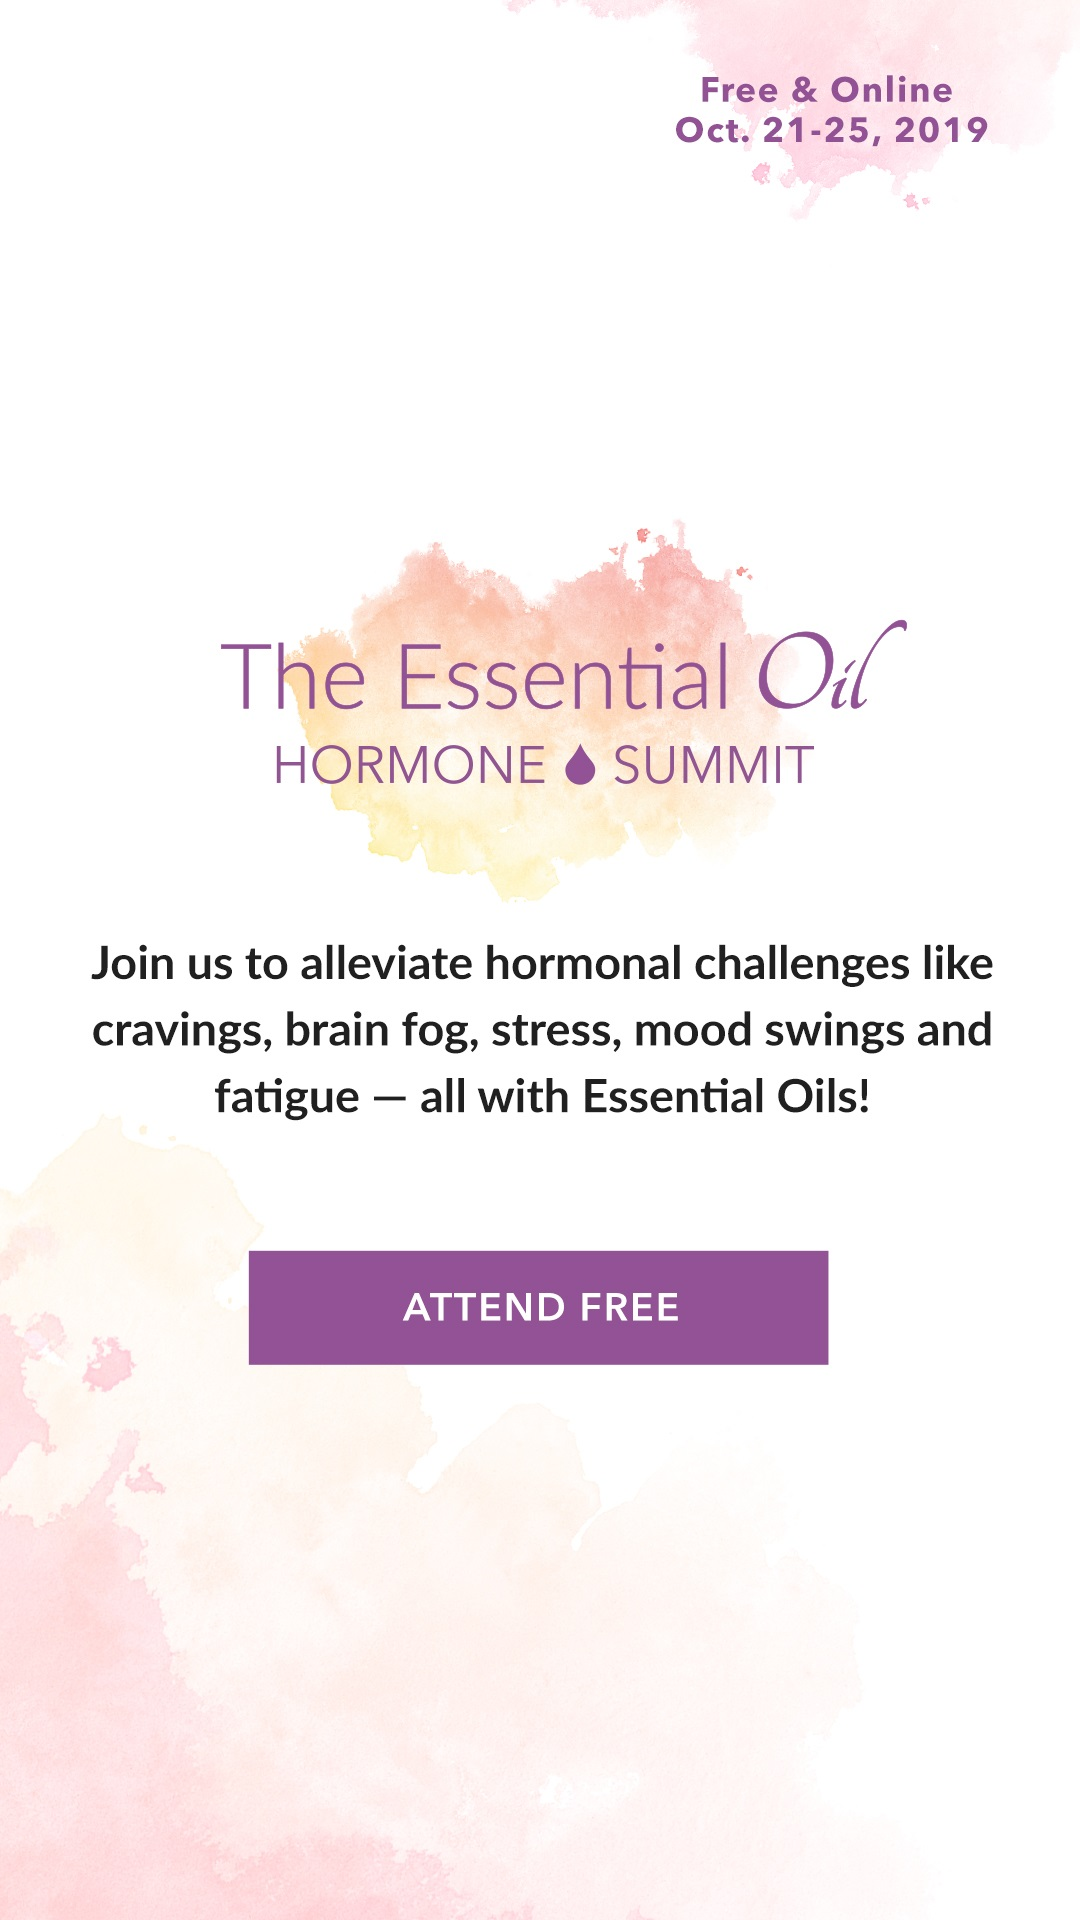 The Essential Oil Hormone Summit